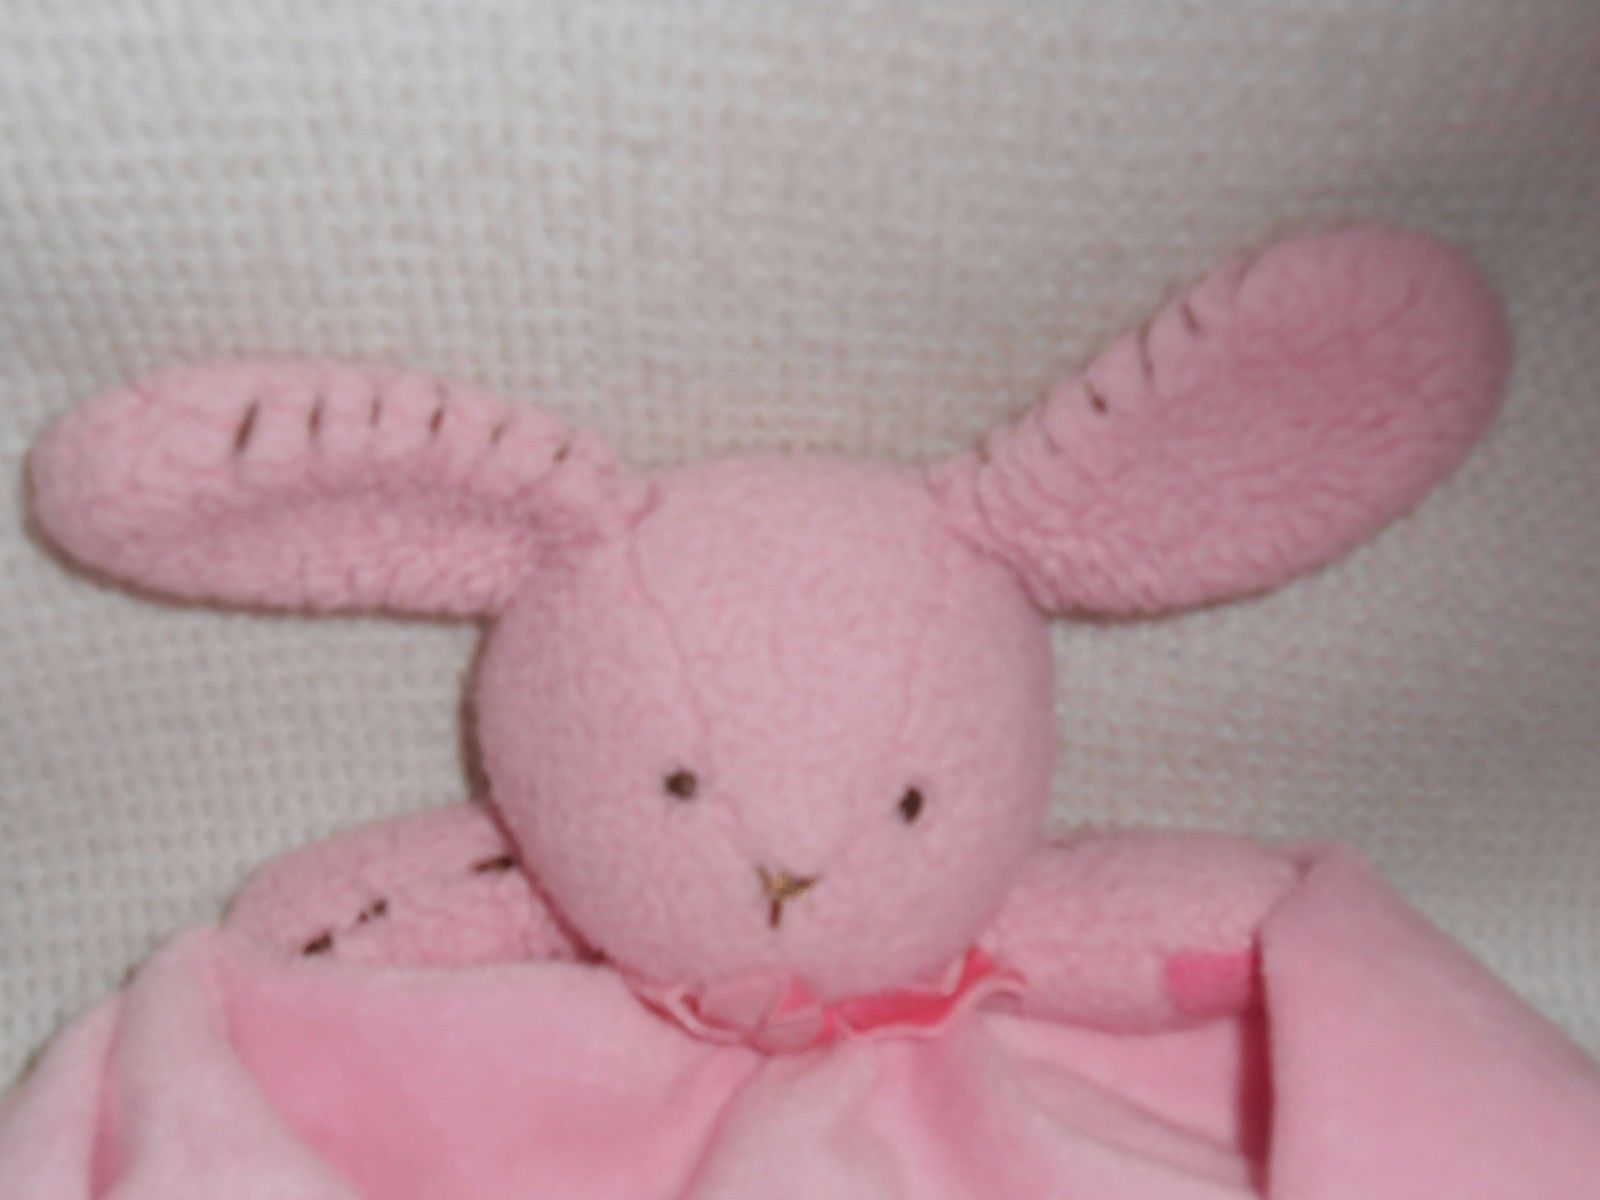 Koala Baby Girls Pink Bunny Rabbit Security Blanket Plush Rattle Lovey Soft NWT